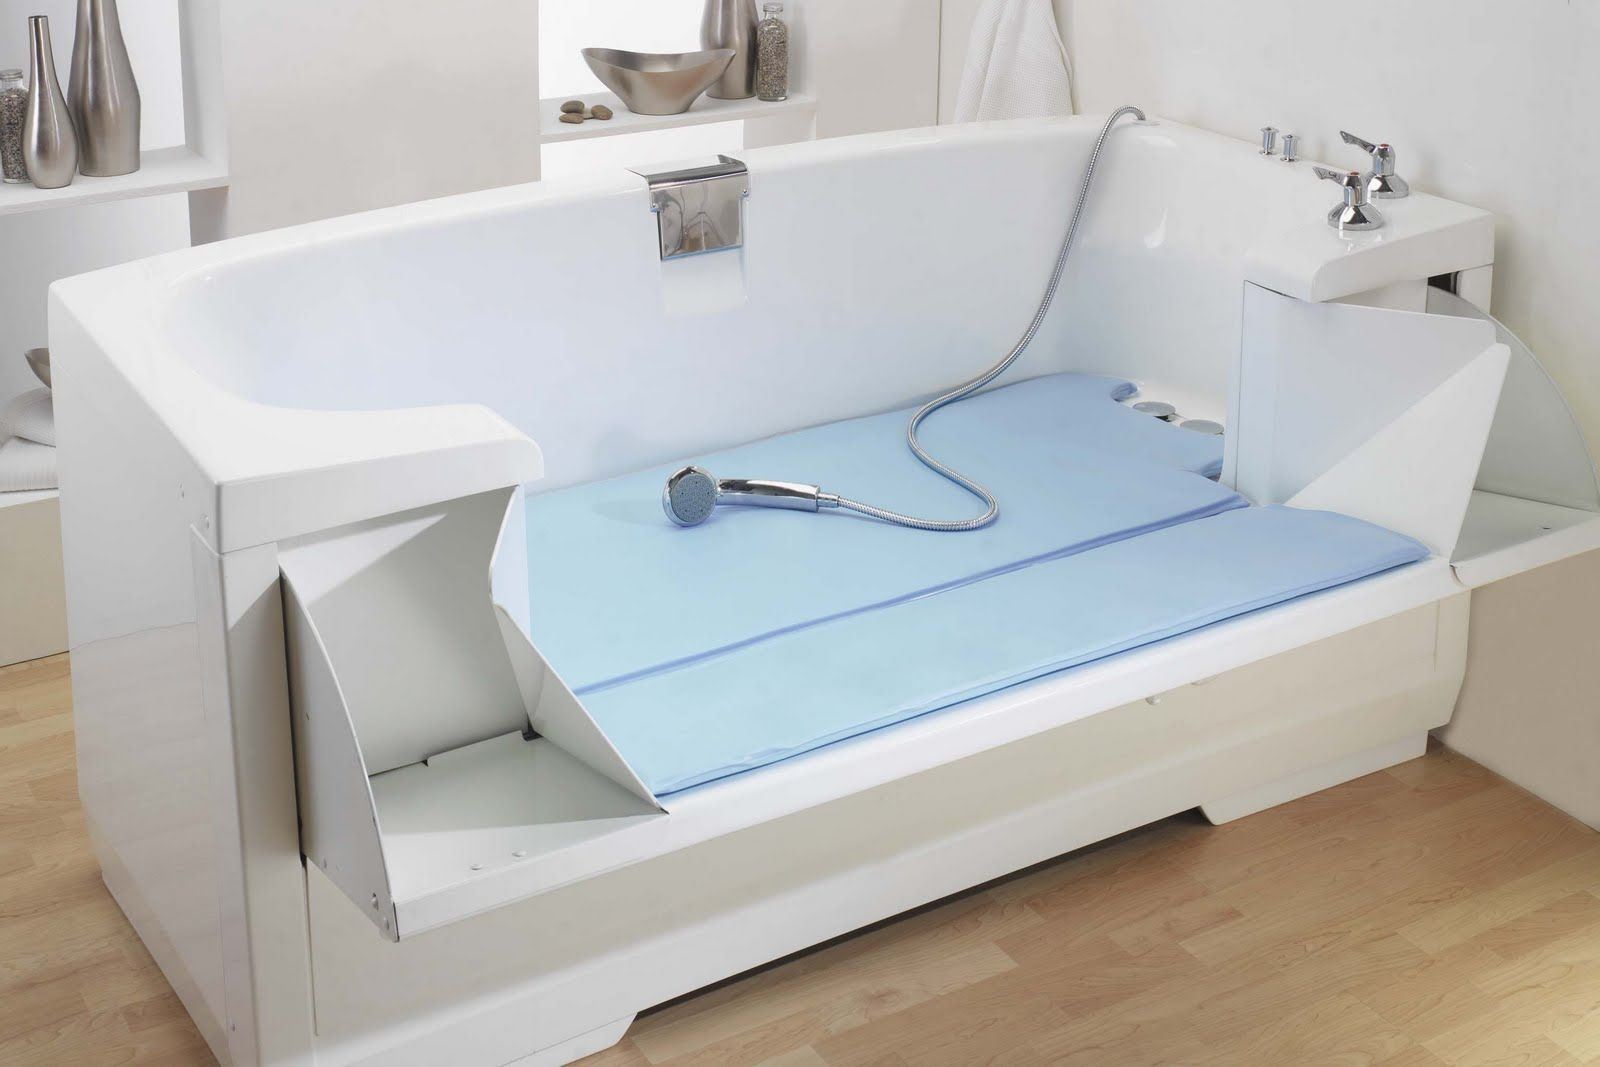 Handicap Bath Chair Handicapper Tubs Bathtubs For The Elderly And Disabled